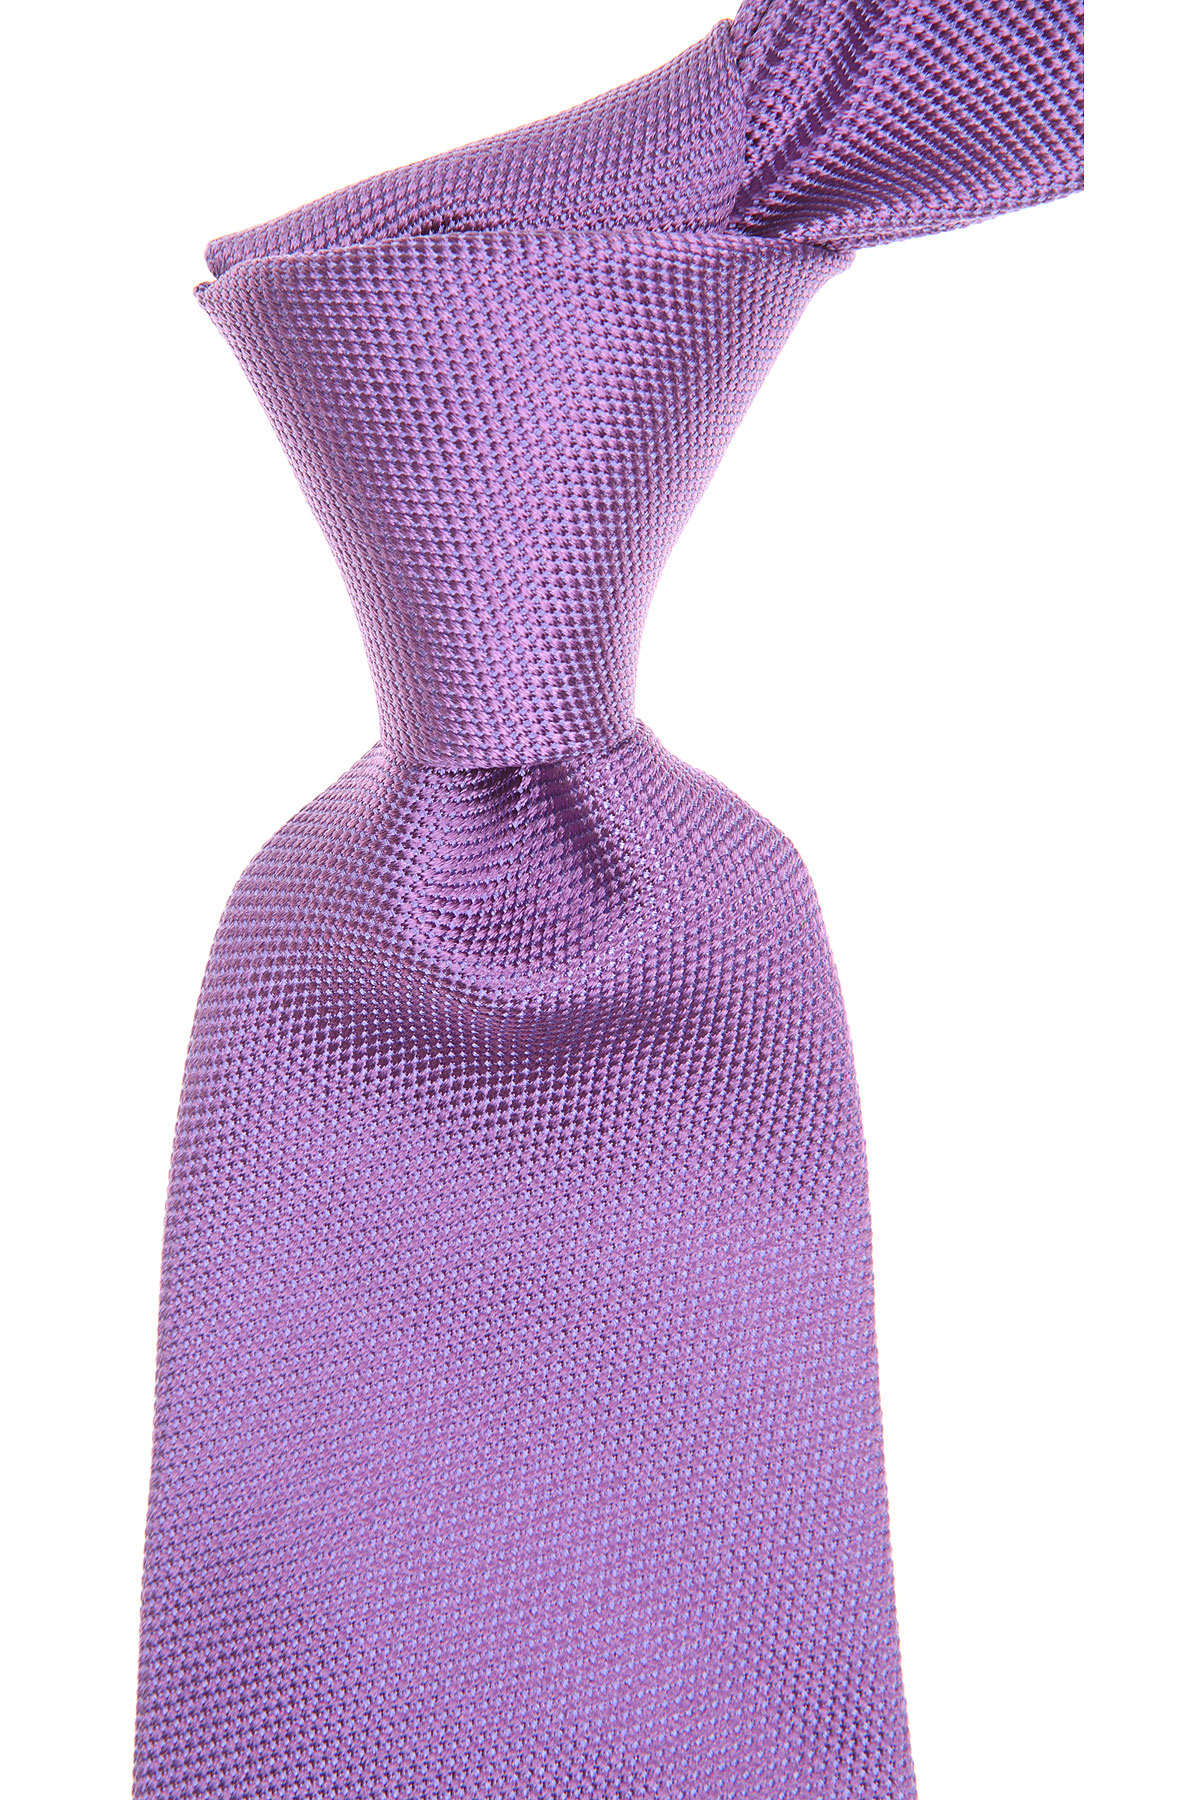 S.T. Dupont Ties On Sale, Bright Violet, Silk, 2019